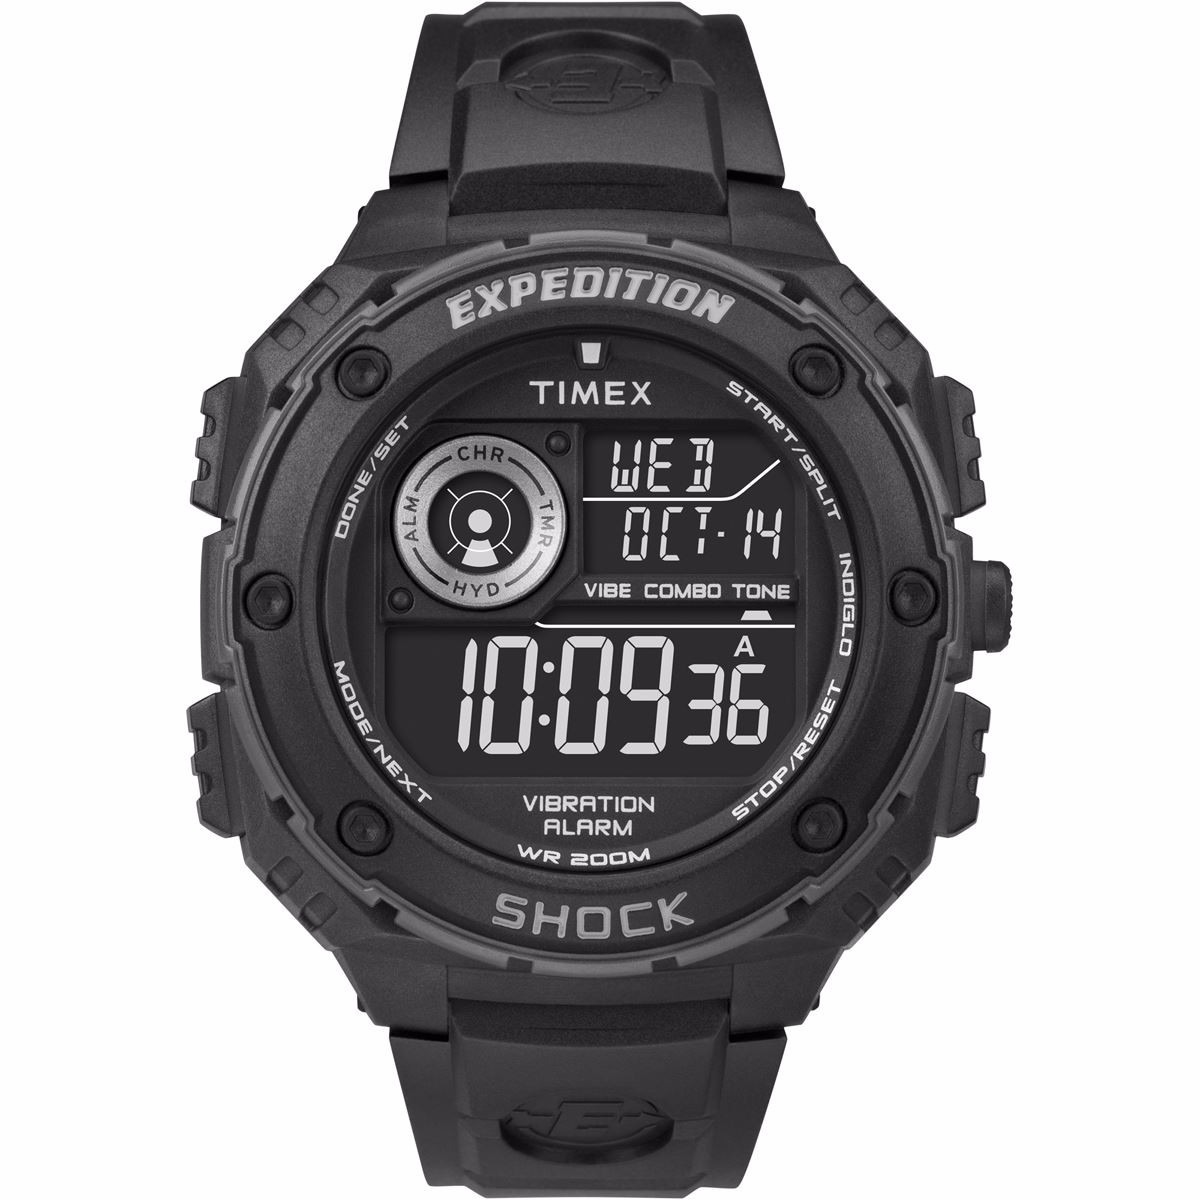 c99ccc6fe5ac Reloj Timex Expedition Vibe Shock T49983 Hombre